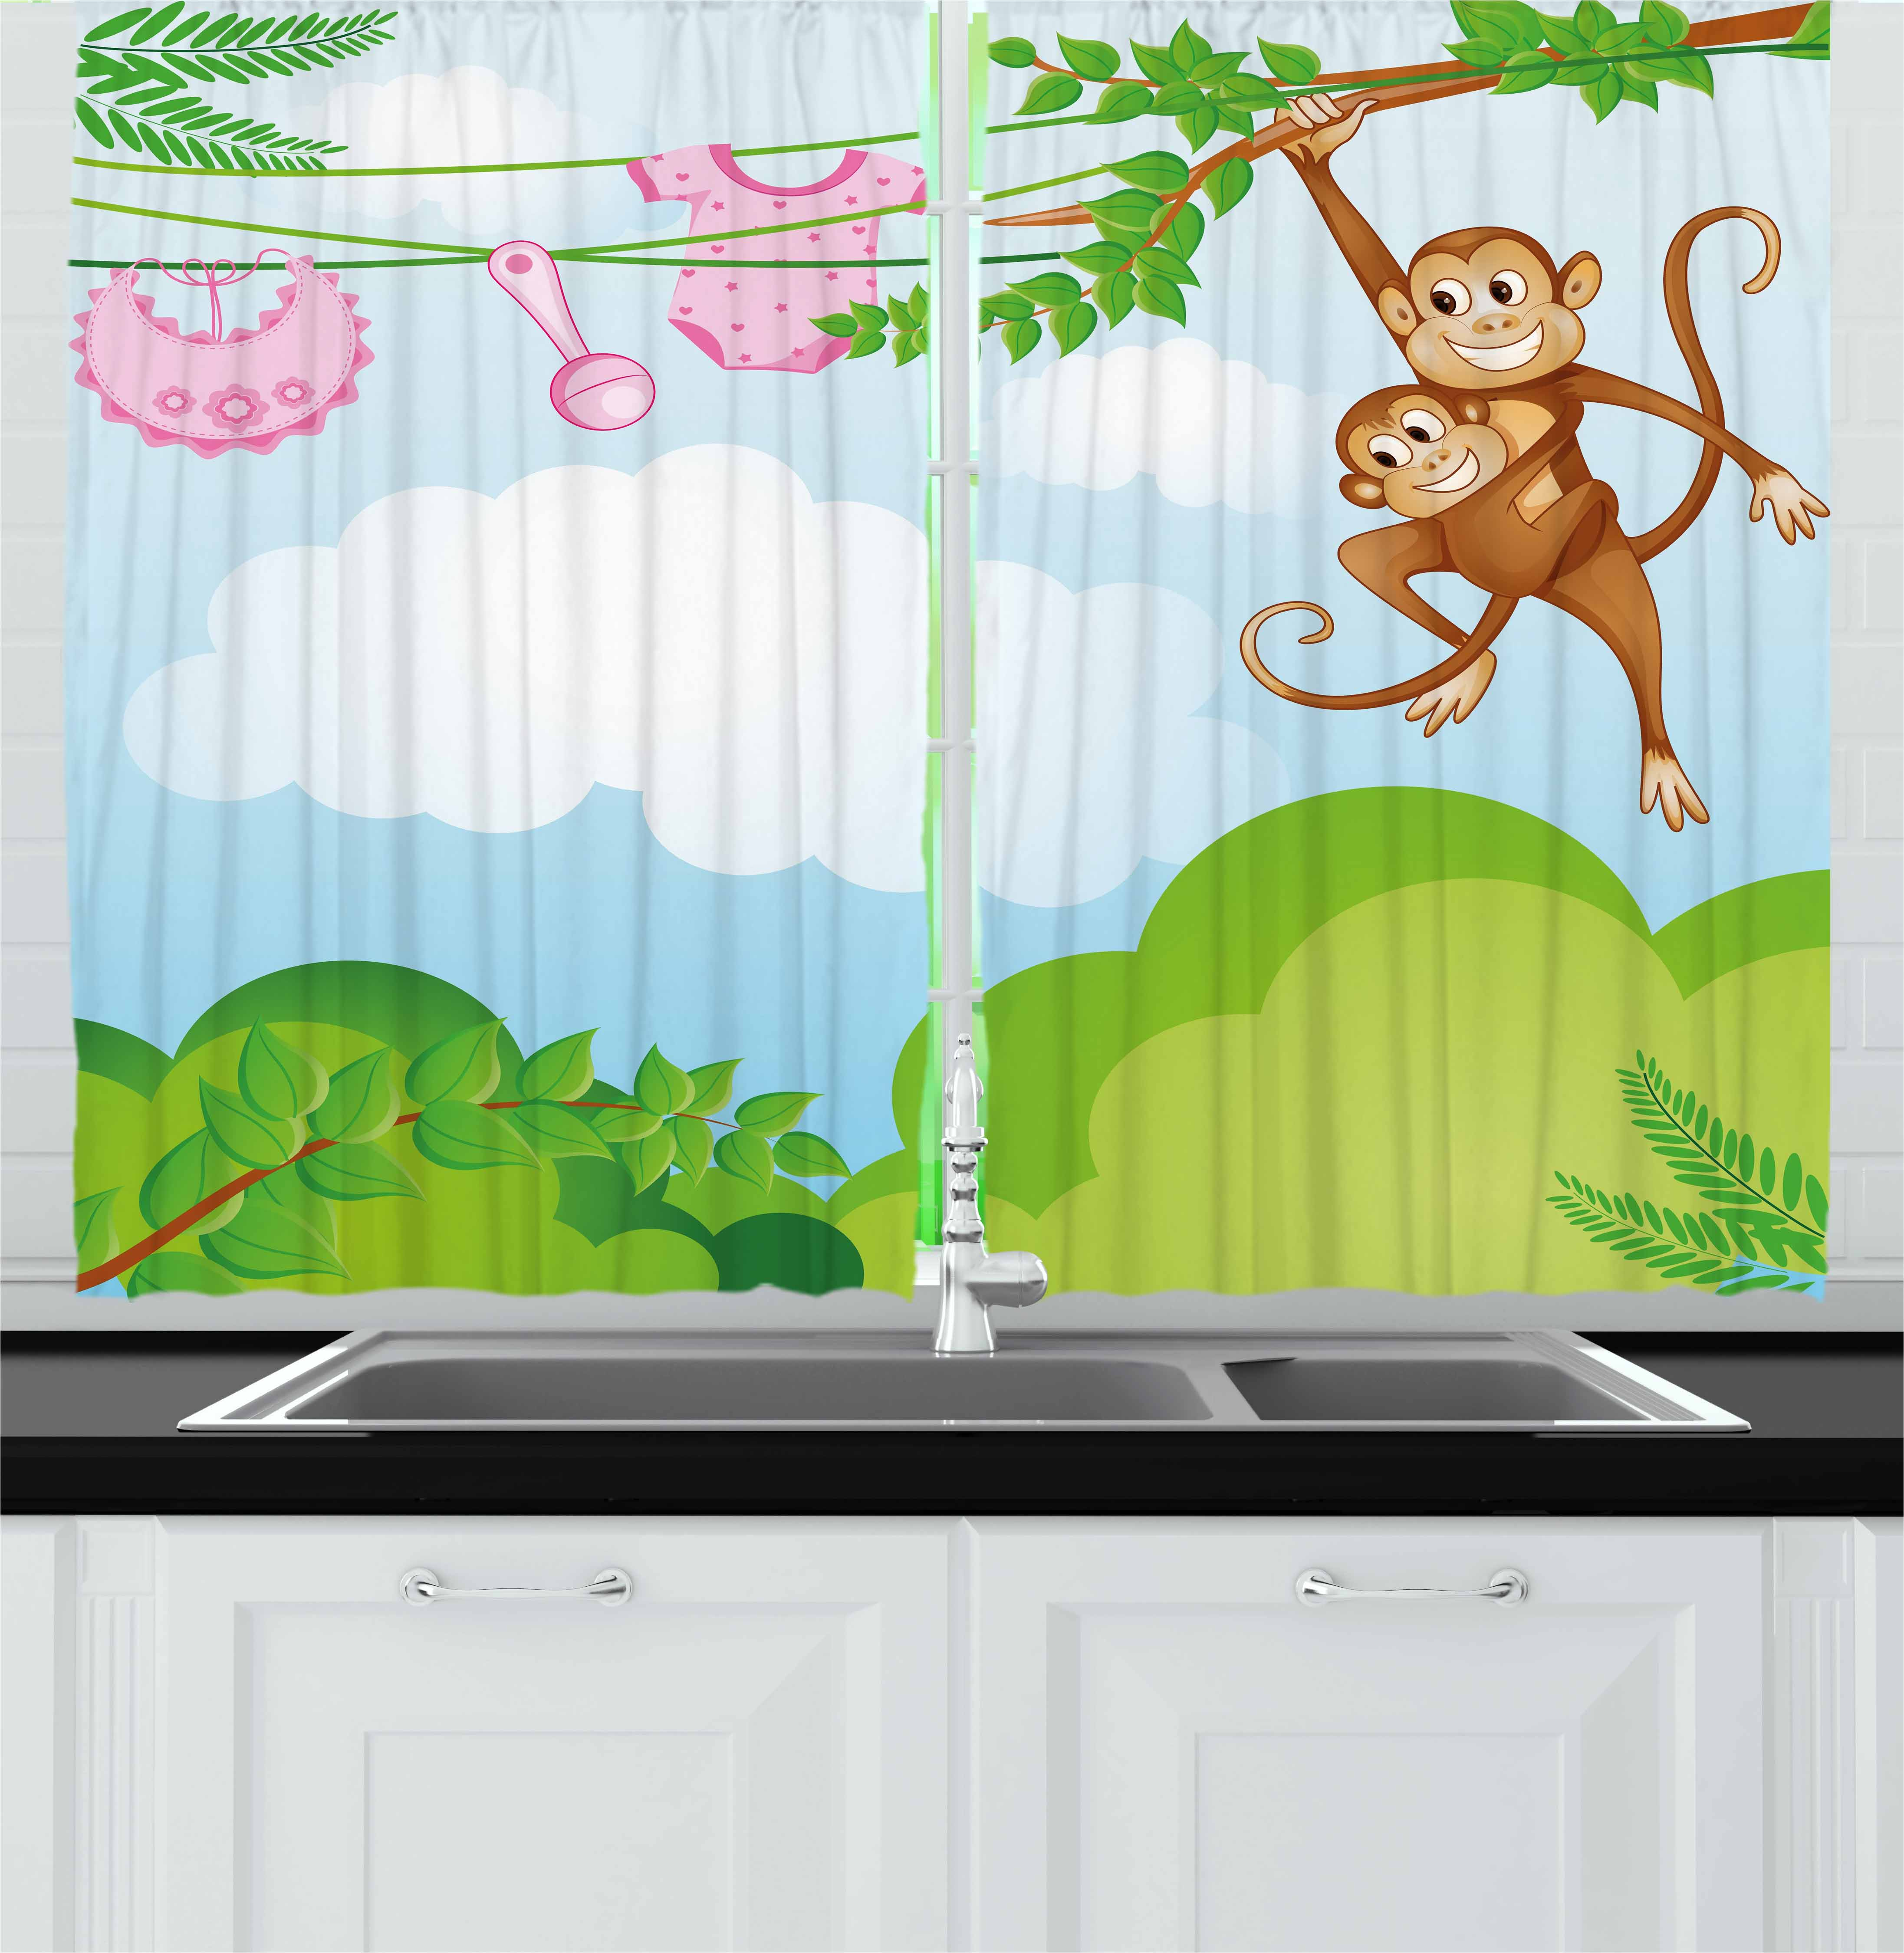 Nursery Curtains 2 Panels Set, Monkey Swinging with the Kid Baby Clothes Chimpanzee Jungle Joy Togetherness, Window Drapes for Living Room Bedroom, 55W X 39L Inches, Green Brown Pink, by Ambesonne